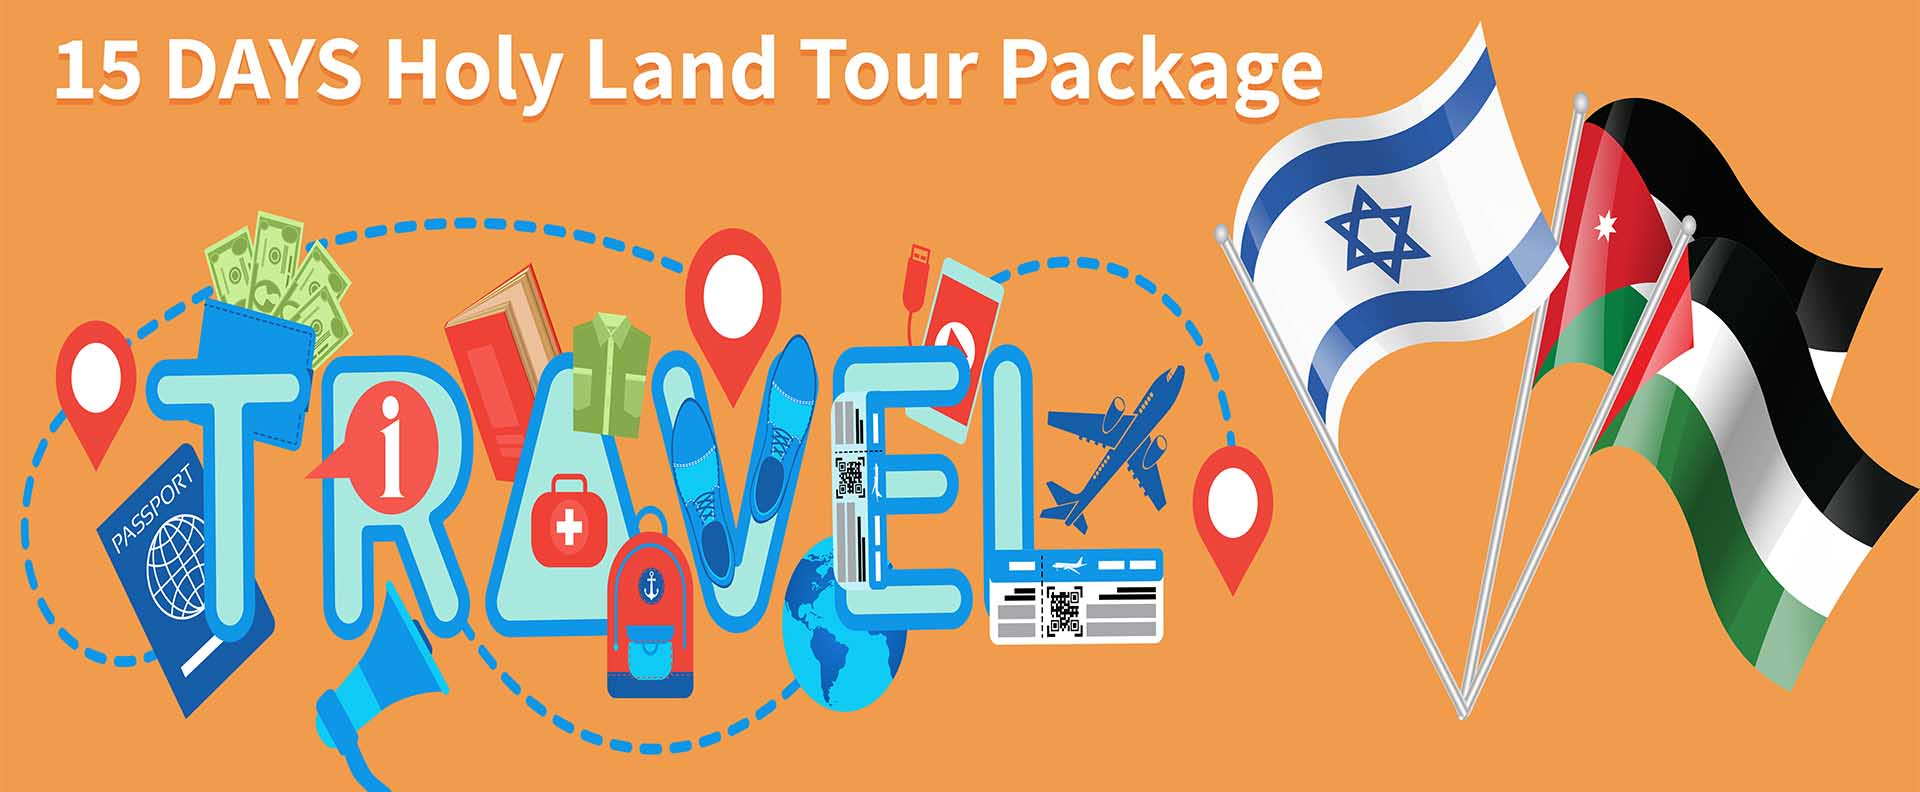 Israel, Palestine and Jordan in 15 Days Holy Land Tour Package